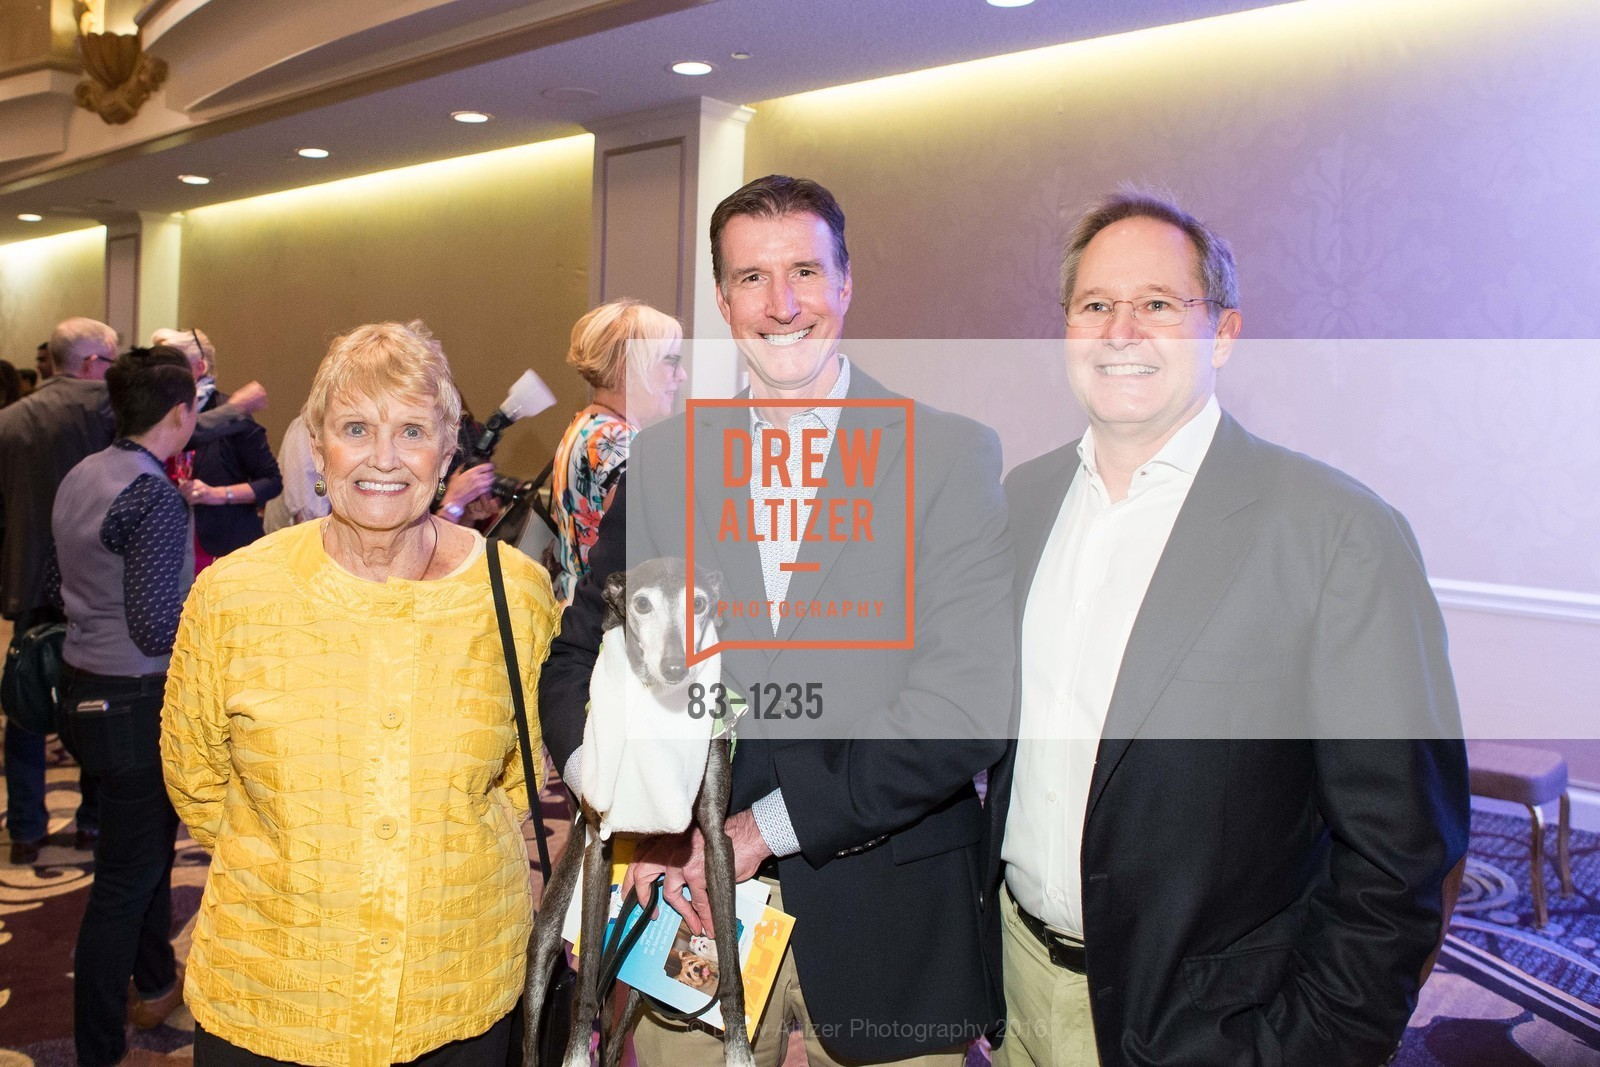 Sheila Lunny, Marty, Peter Lunny, Jonathan Schilling, Photo #83-1235